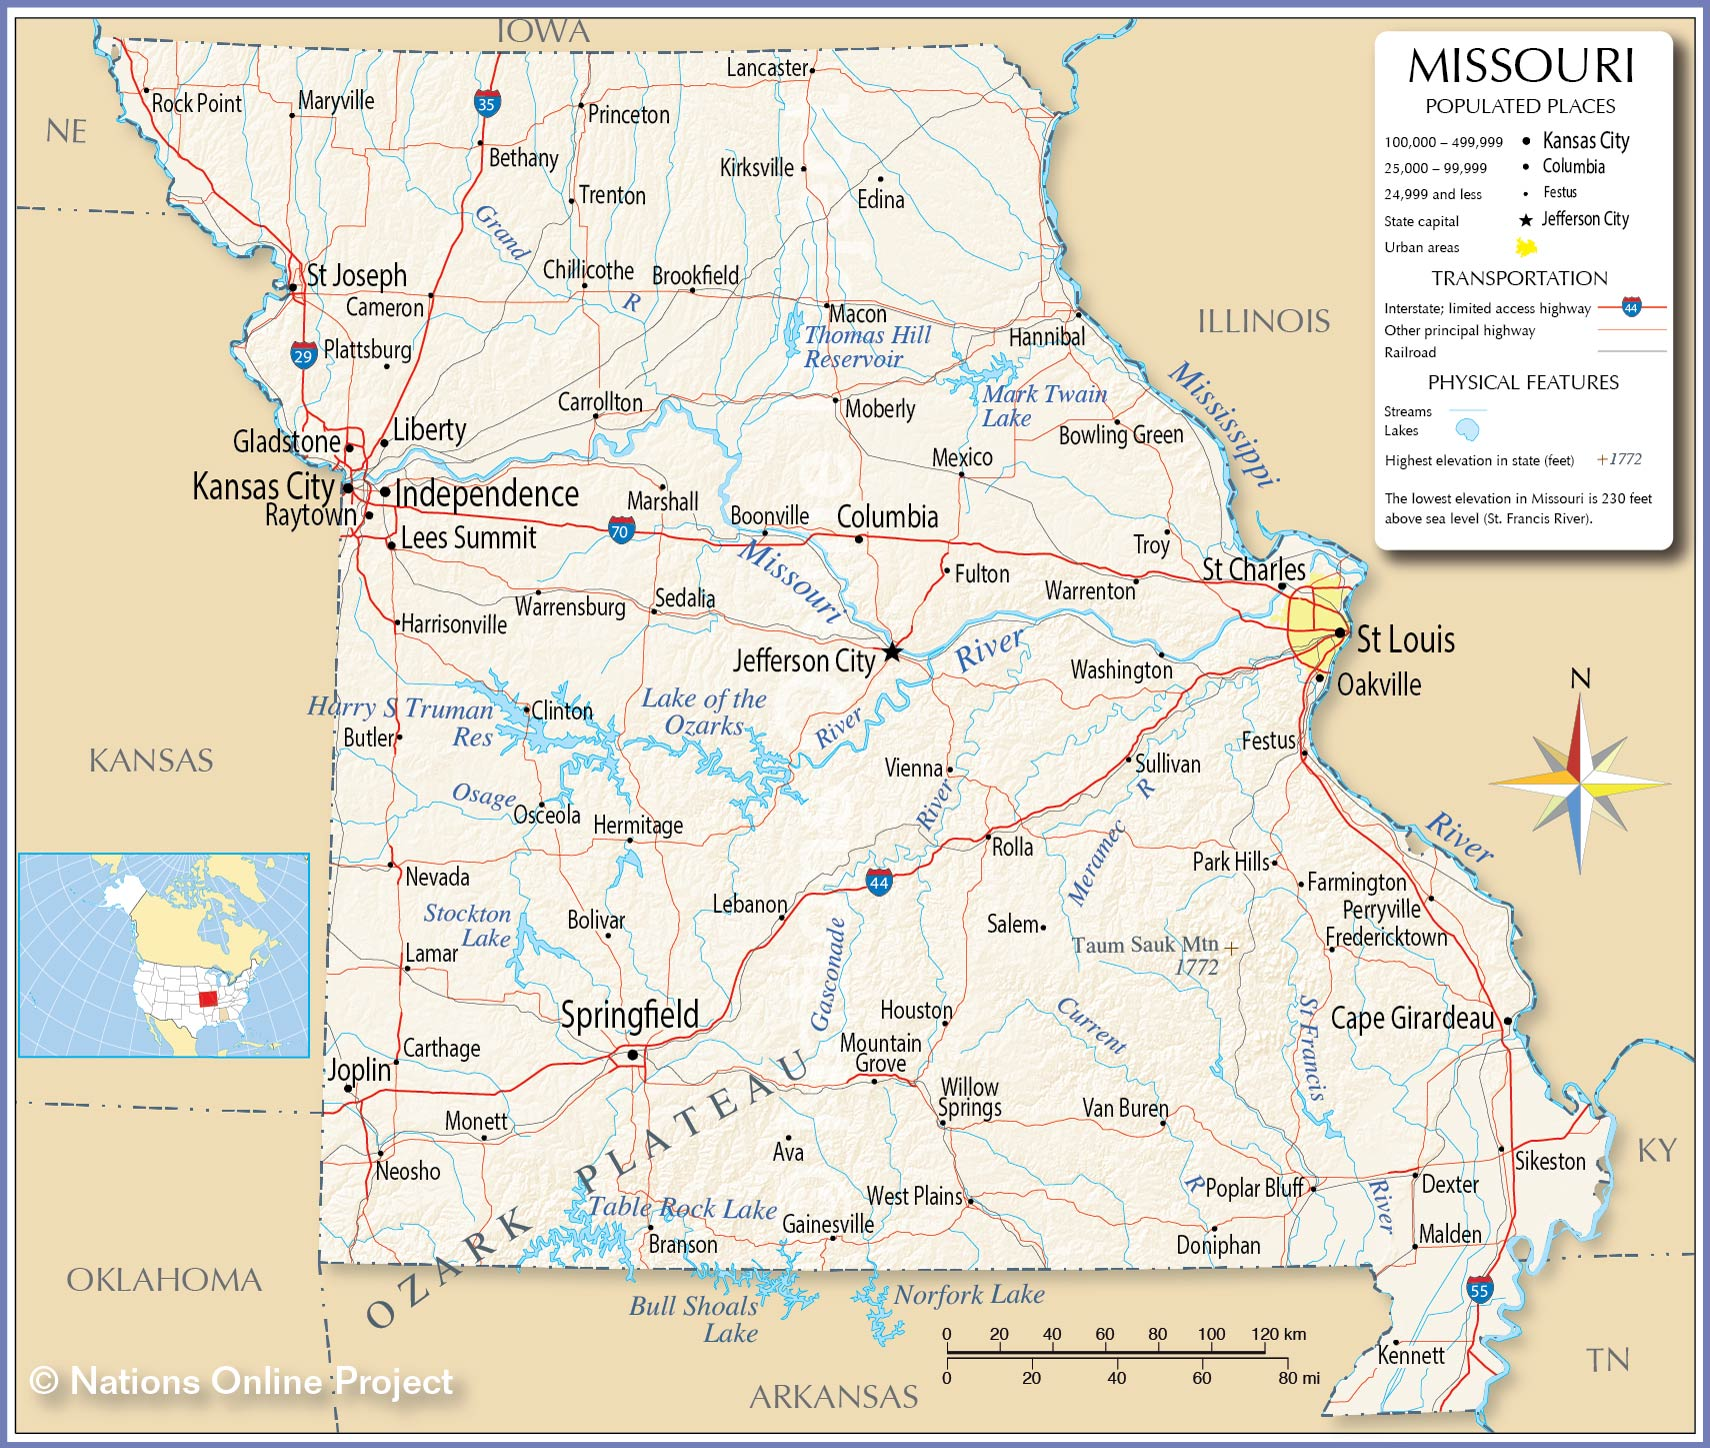 Reference Map Of Missouri USA Nations Online Project - Missouri in usa map